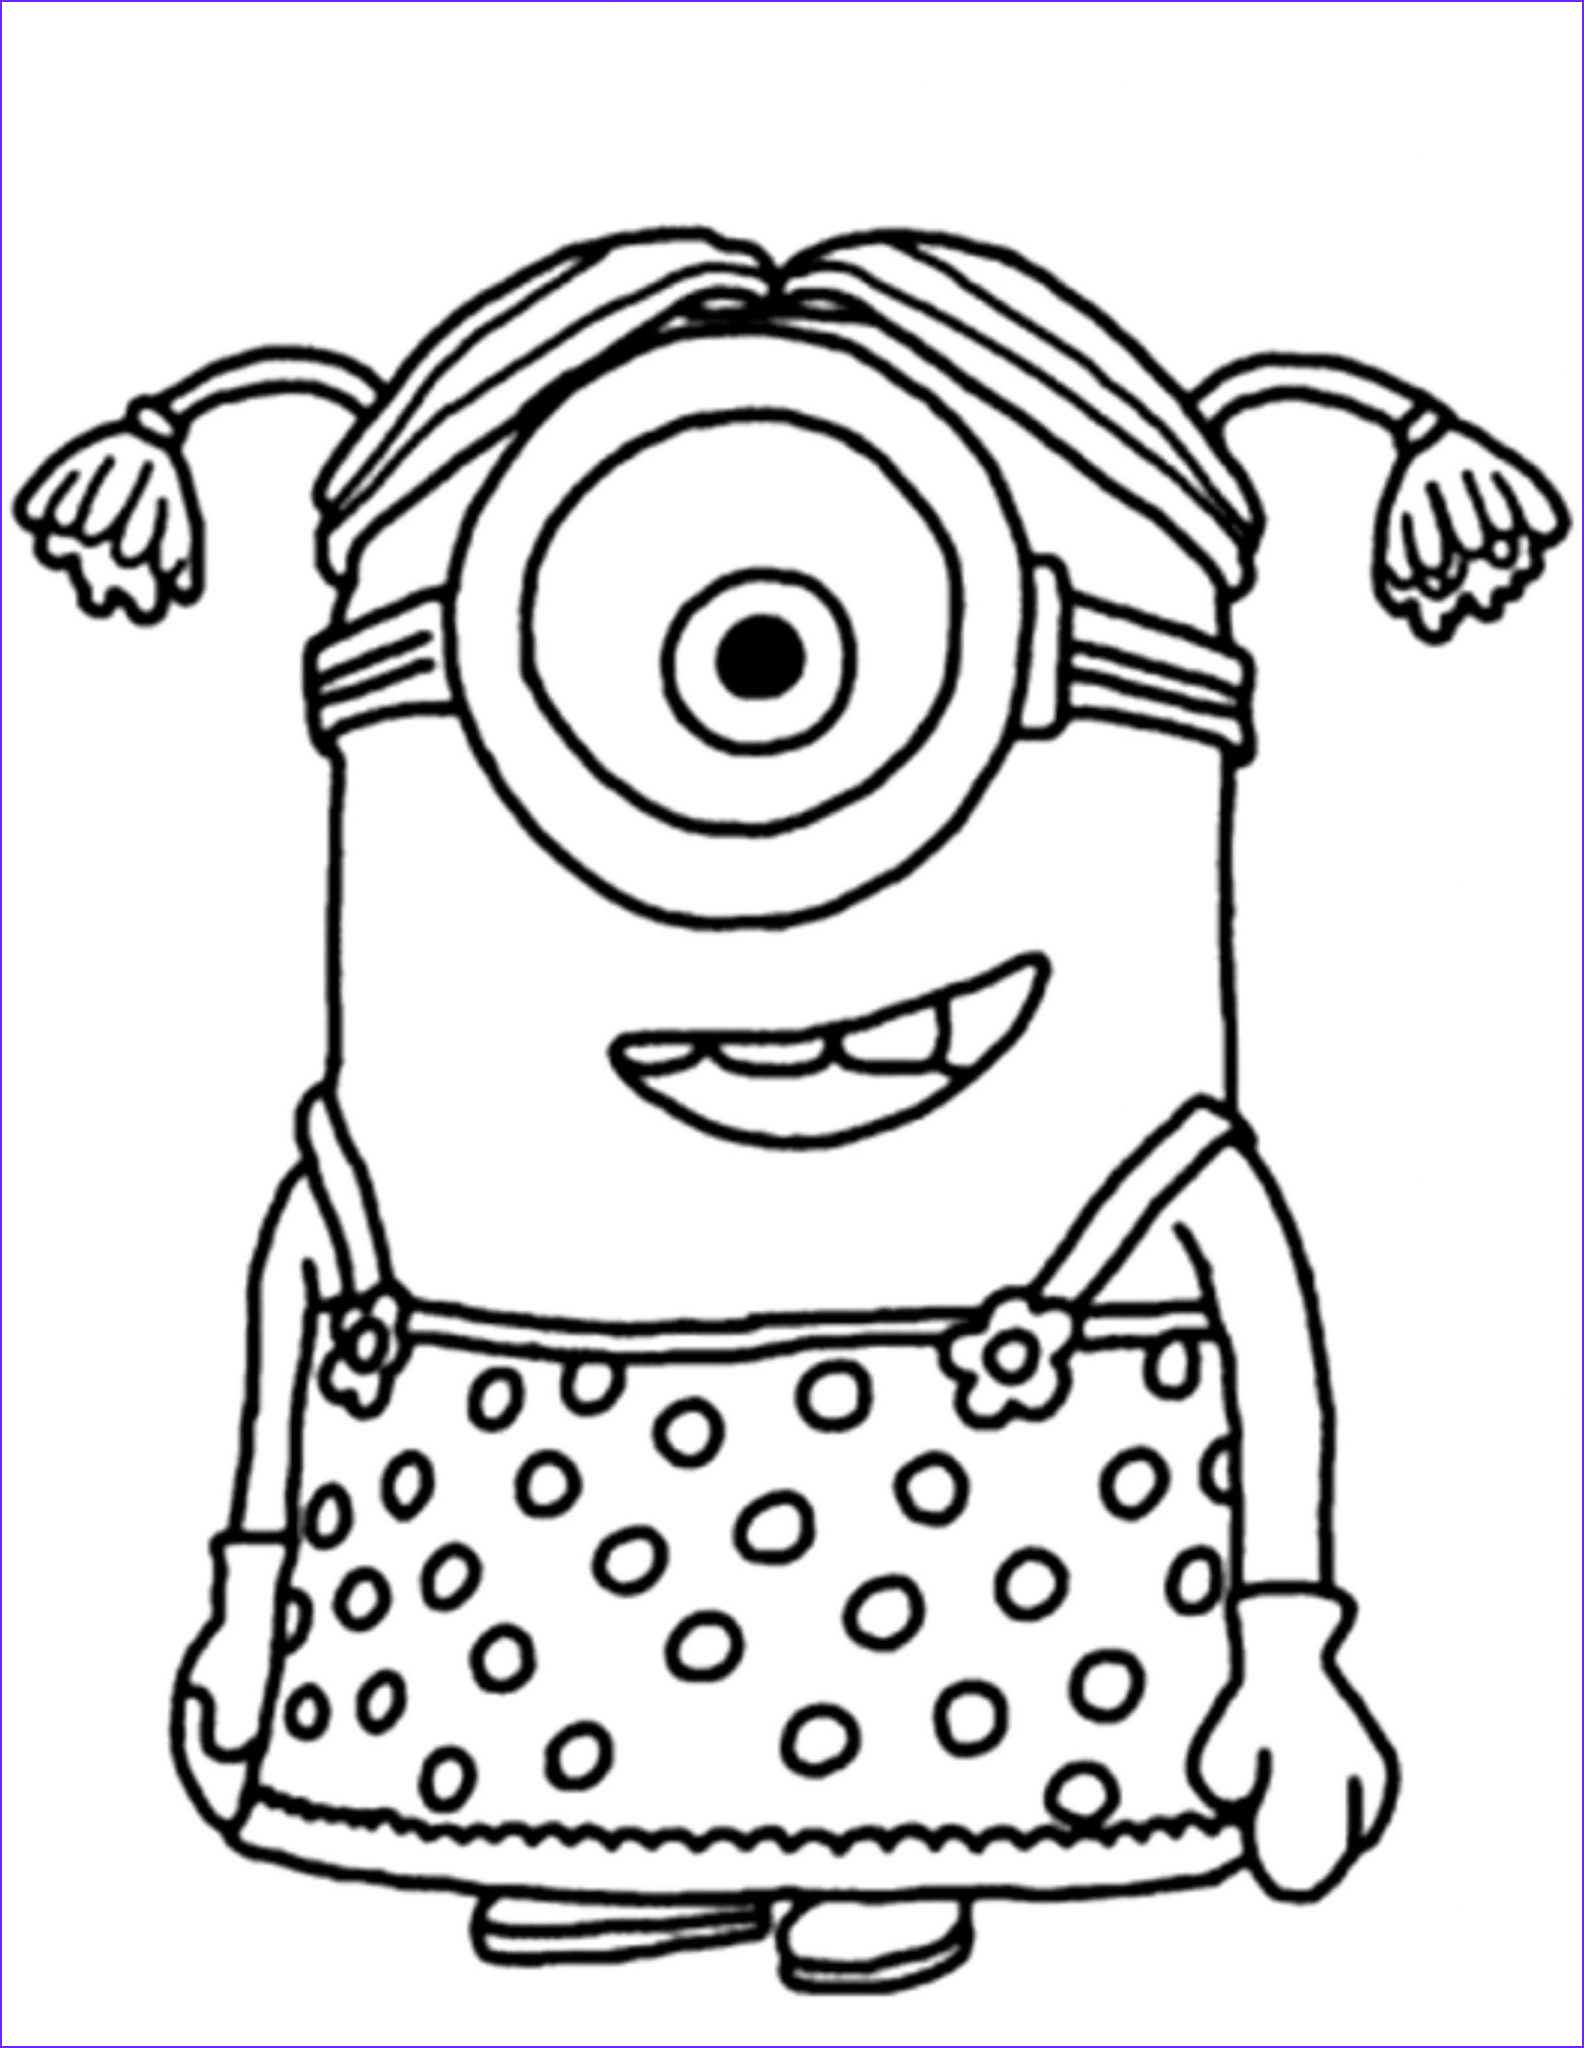 Minion Coloring Sheet Beautiful Photos Print & Download Minion Coloring Pages for Kids to Have